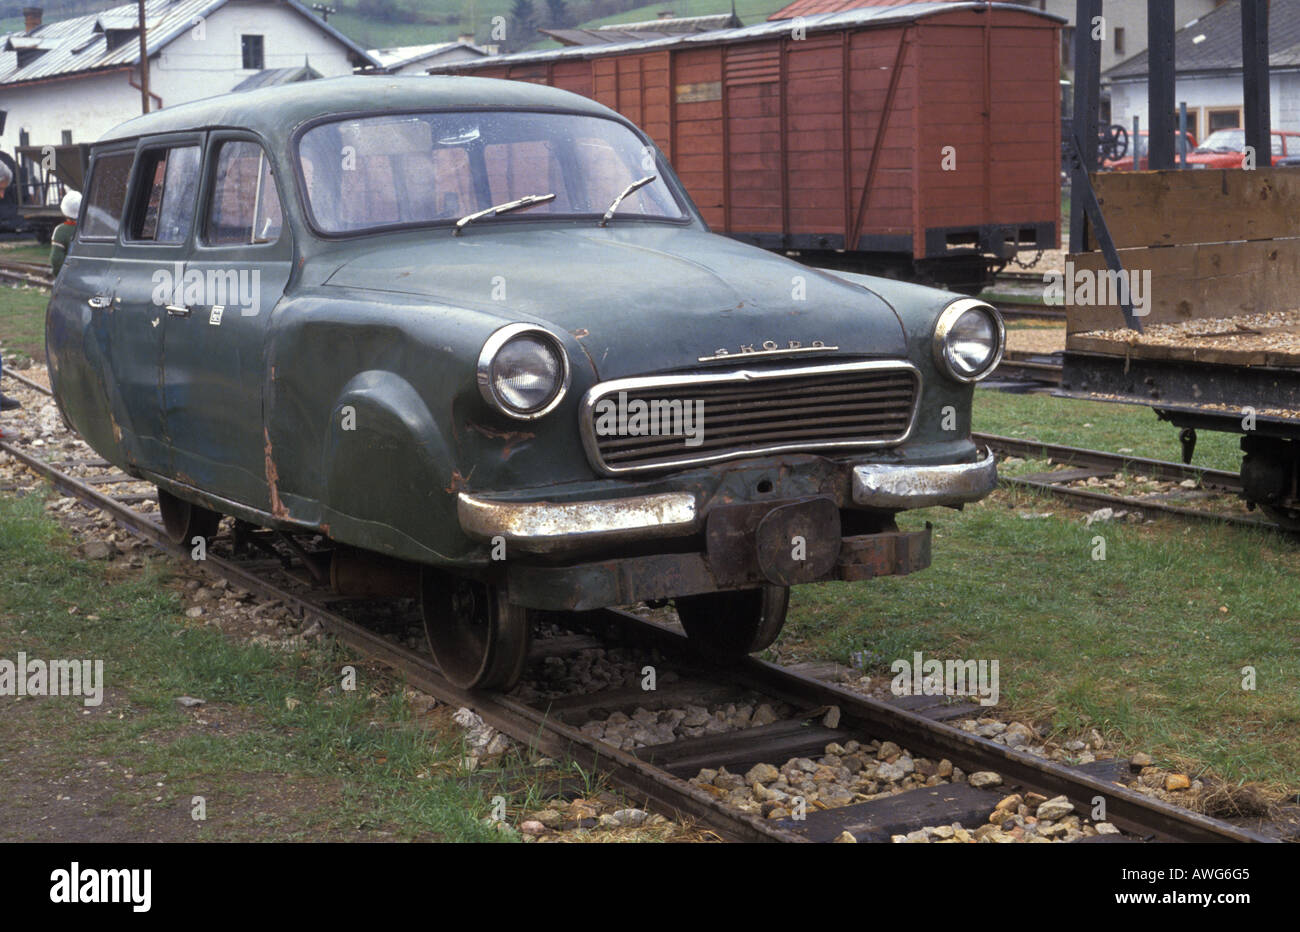 An old Skoda car converted to run on railway lines at Cierny Balog preserved forest railway Slovakia - Stock Image